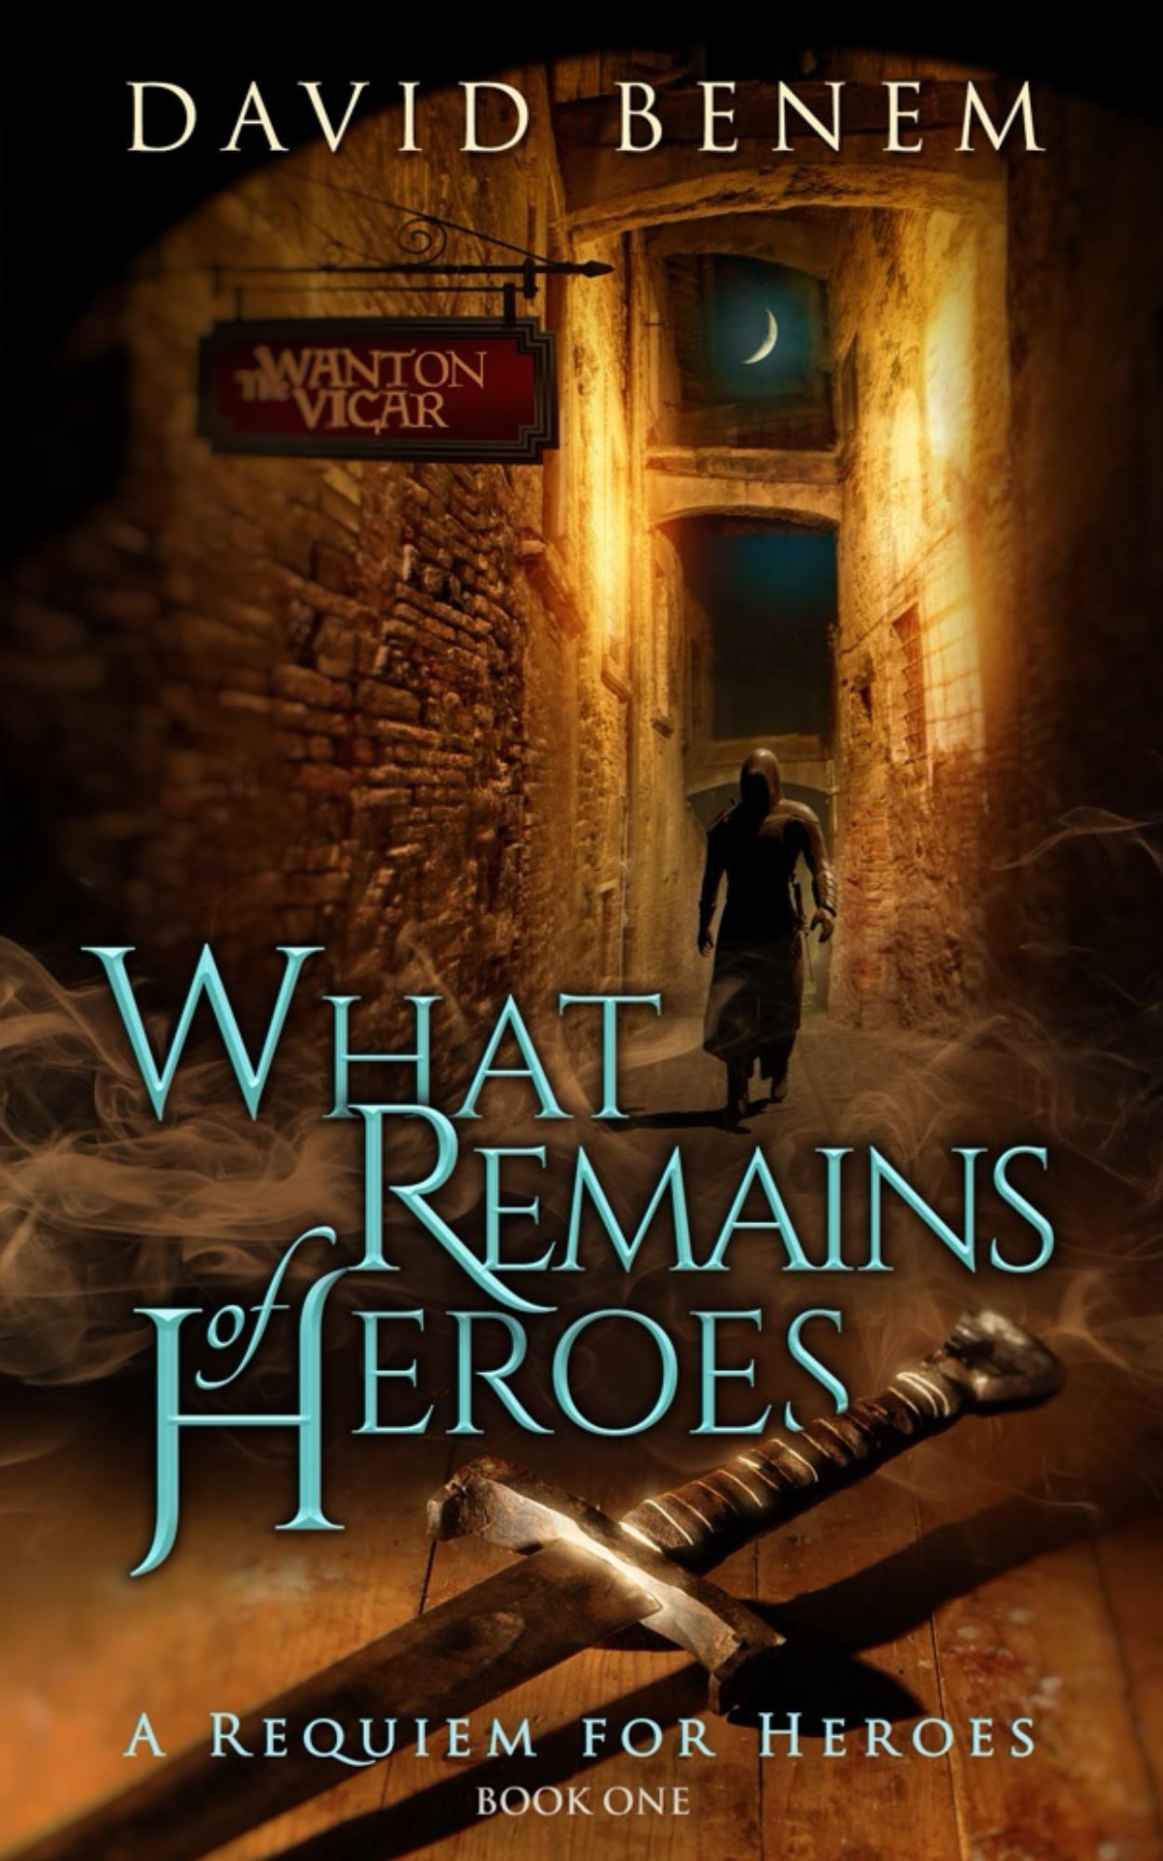 What Remains of Heroes by David Benem (A Requiem for Heroes #1)